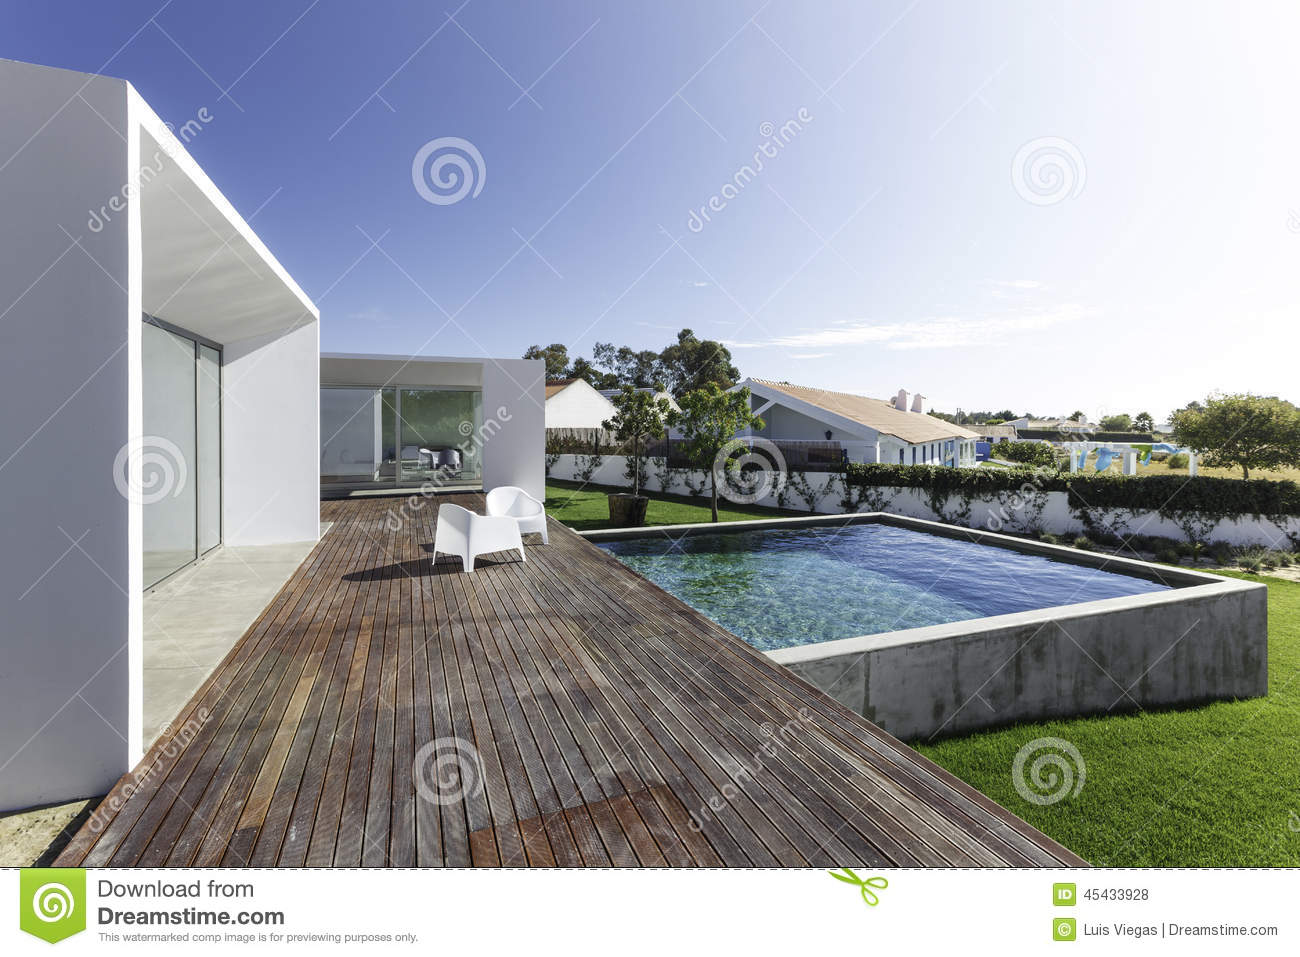 House With Garden Swimming Pool And Wooden Deck Stock Photo - House with garden and swimming pool